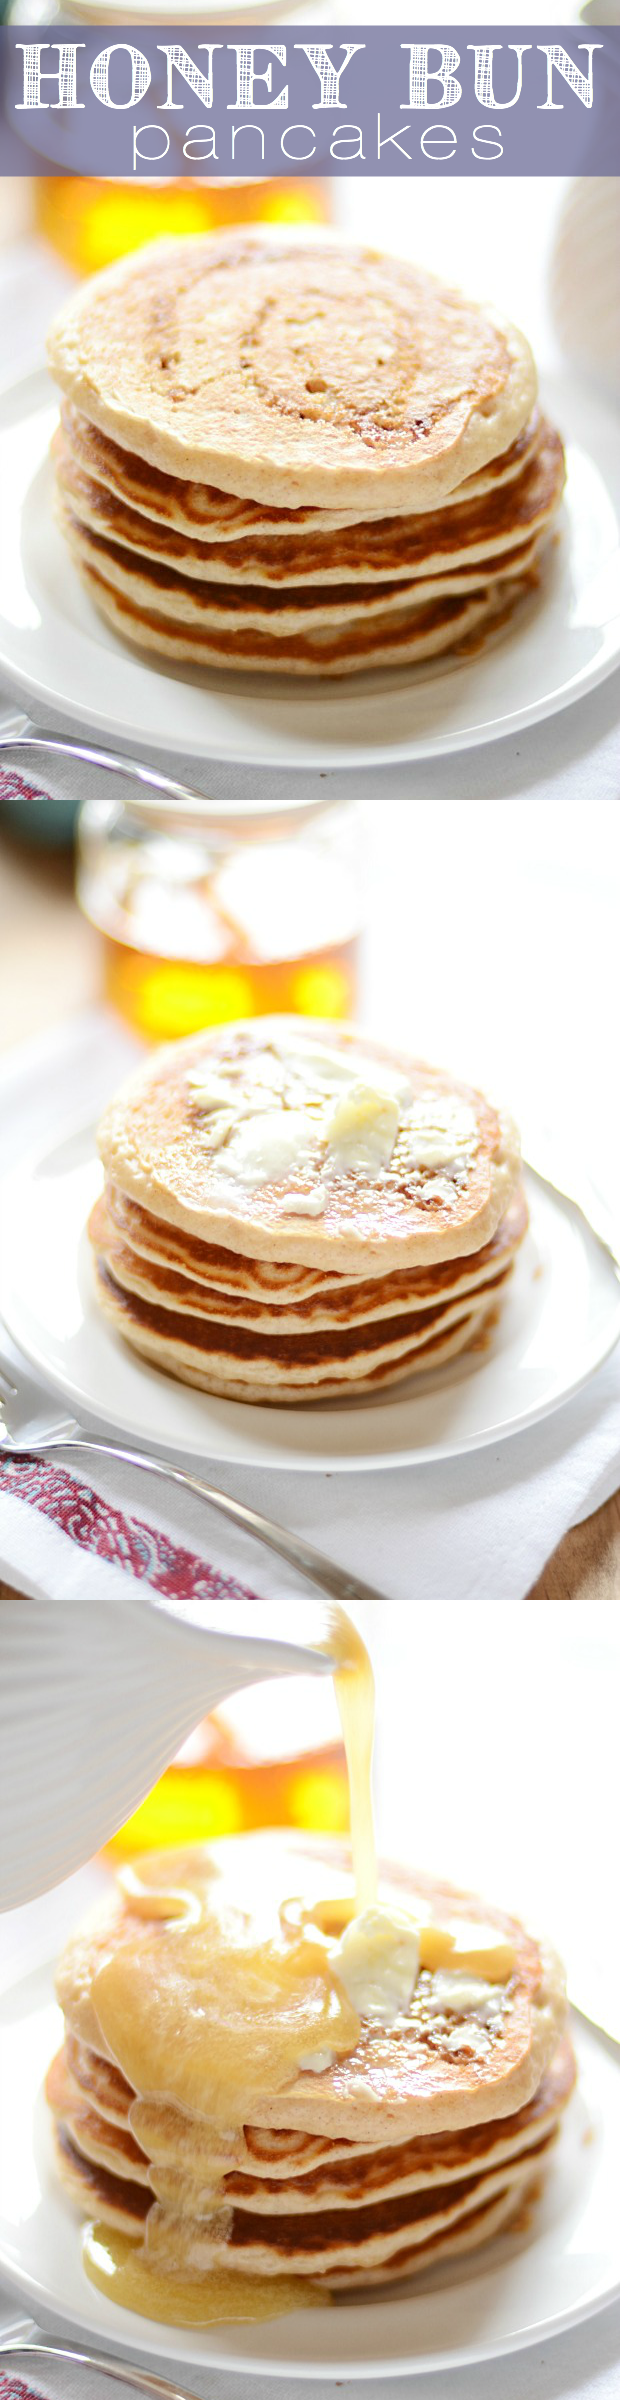 It's a Honey Bun! But in the form of  a warm, fluffy, delicious pancake smothered in Buttermilk syrup...